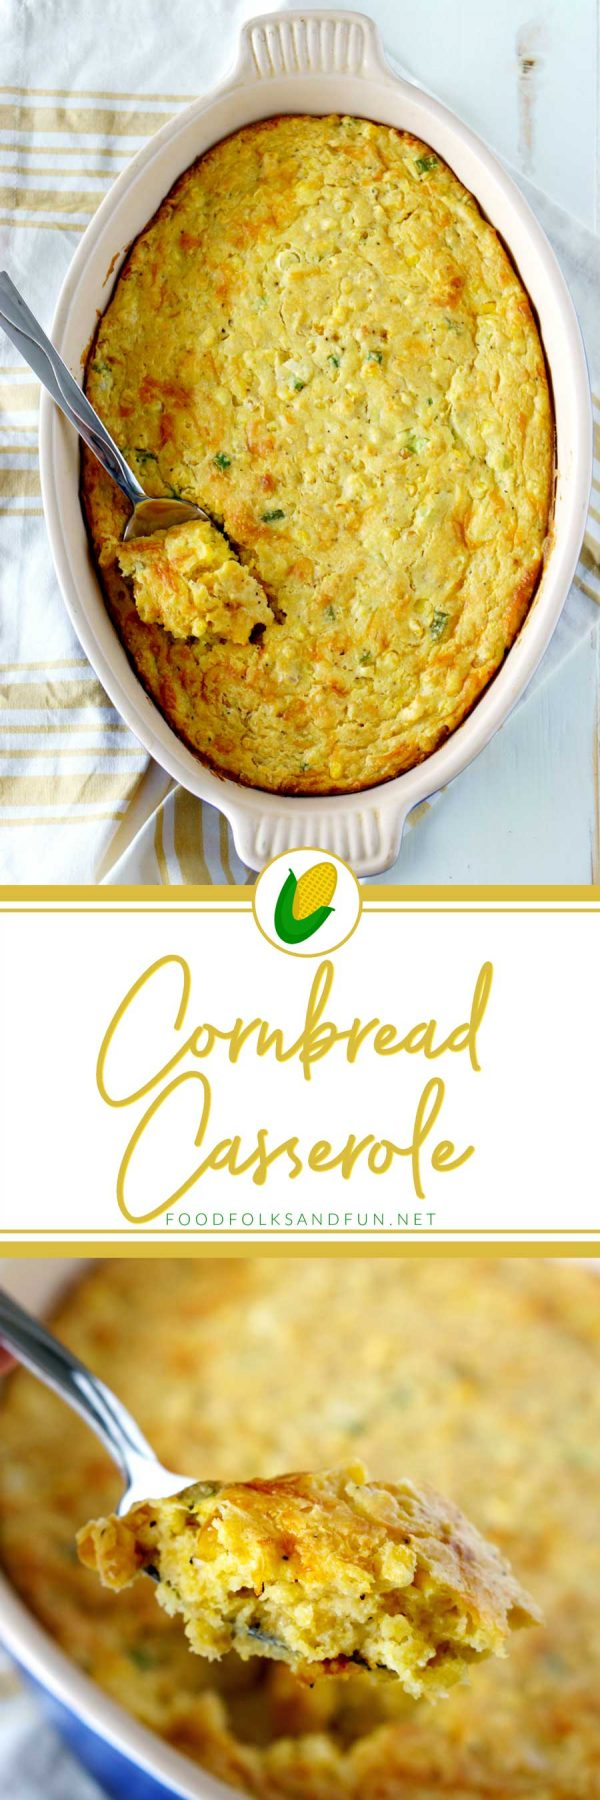 Super Easy Cornbread Casserole with Cheese and Green Onions